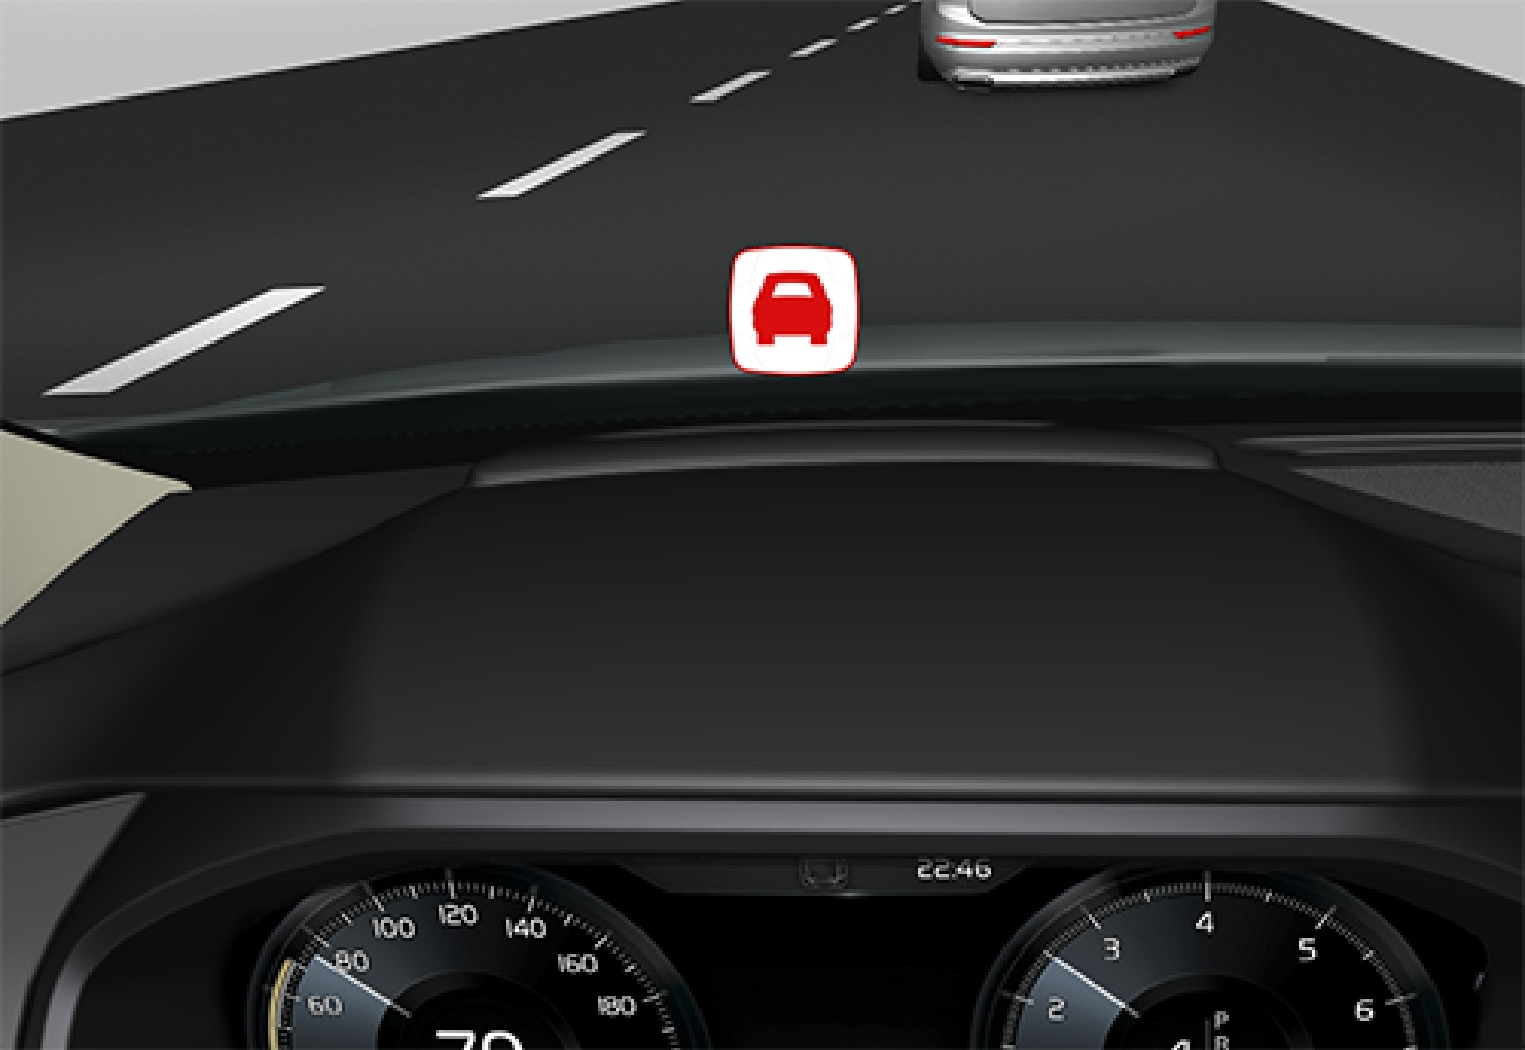 P5-1507-Head Up Display, collision warning